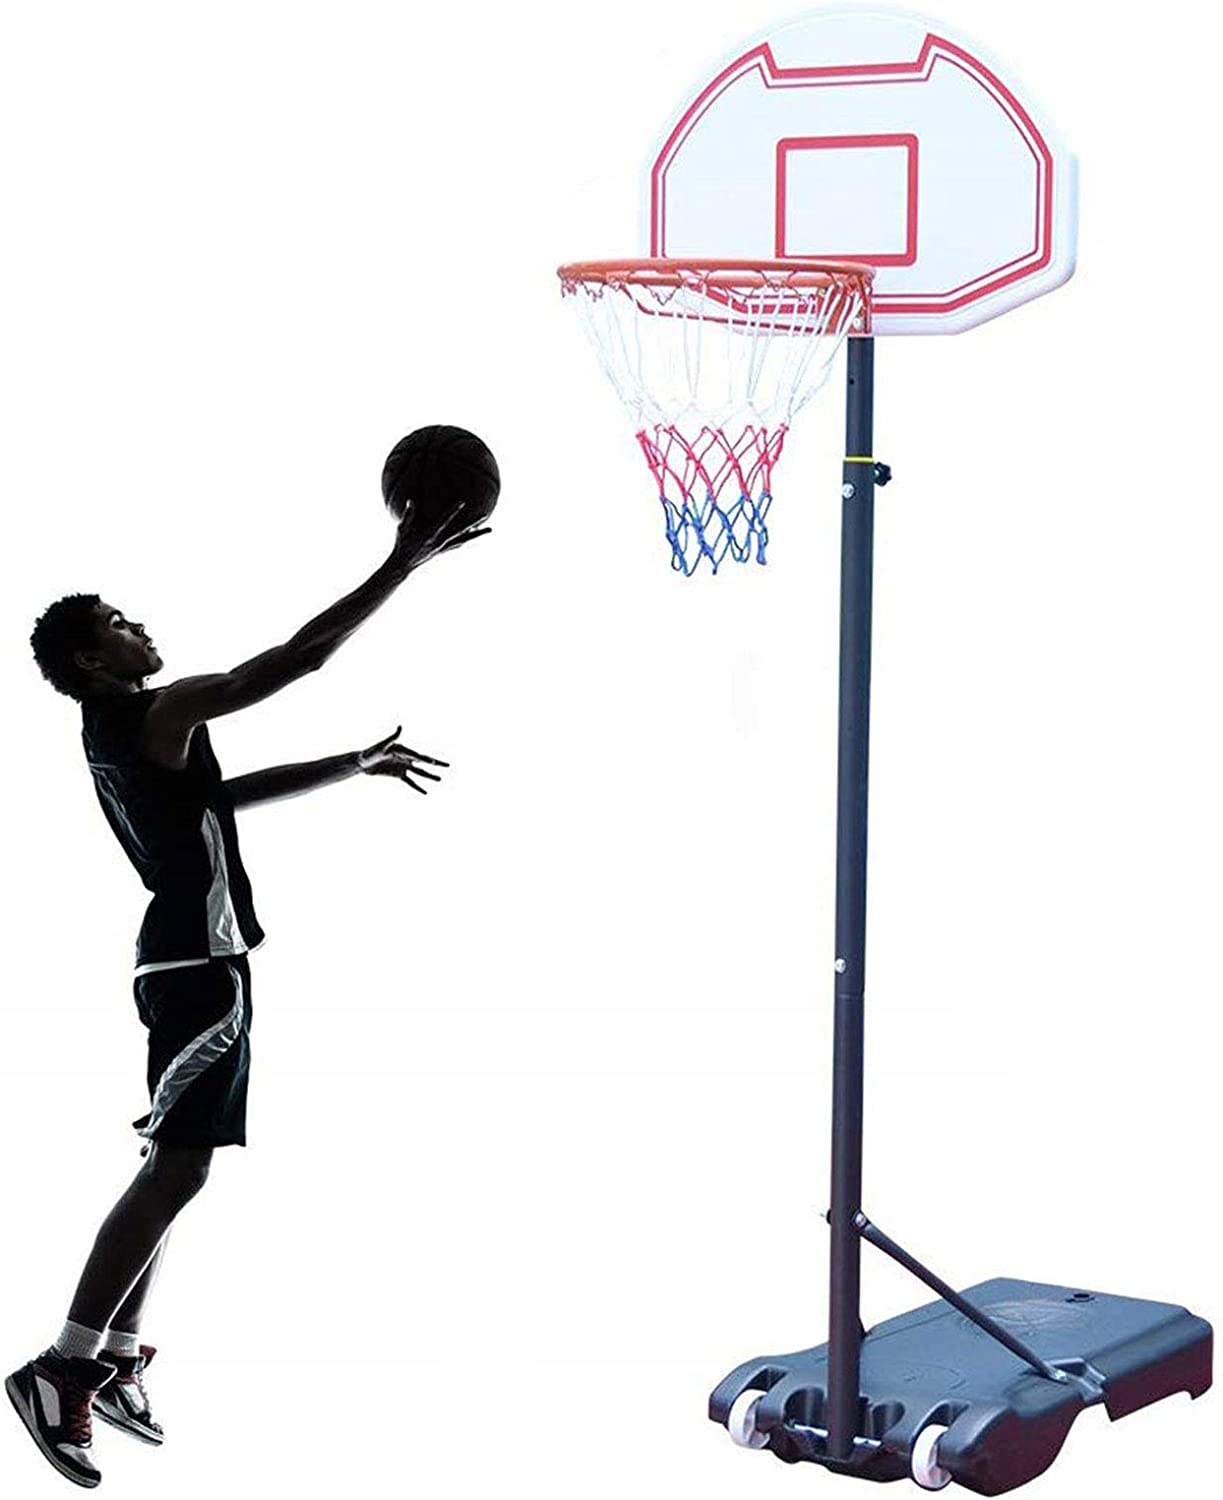 NORTHERN STONE Junior Height Adjustable Basketball Hoop Free Standing Portable Basketball Stand for Kids